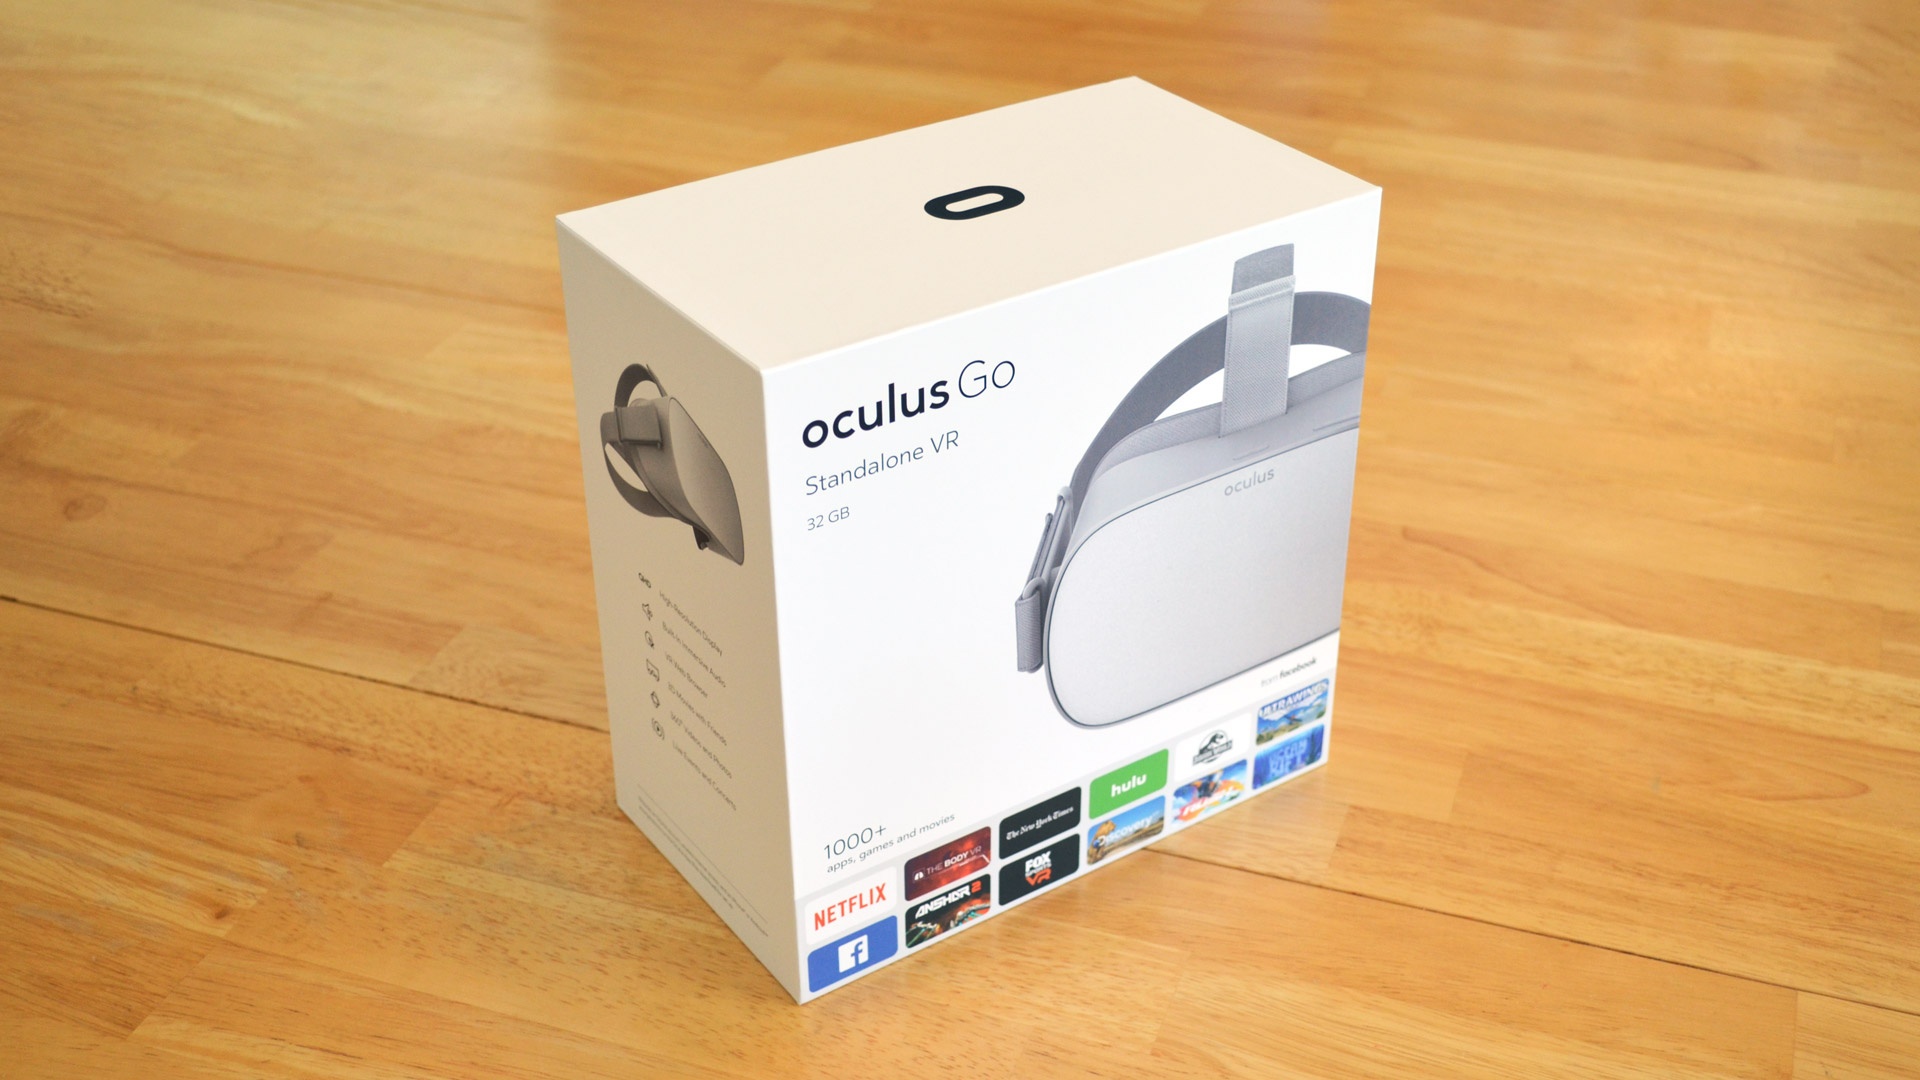 The Best Oculus Go Black Friday & Cyber Monday 2018 Deal